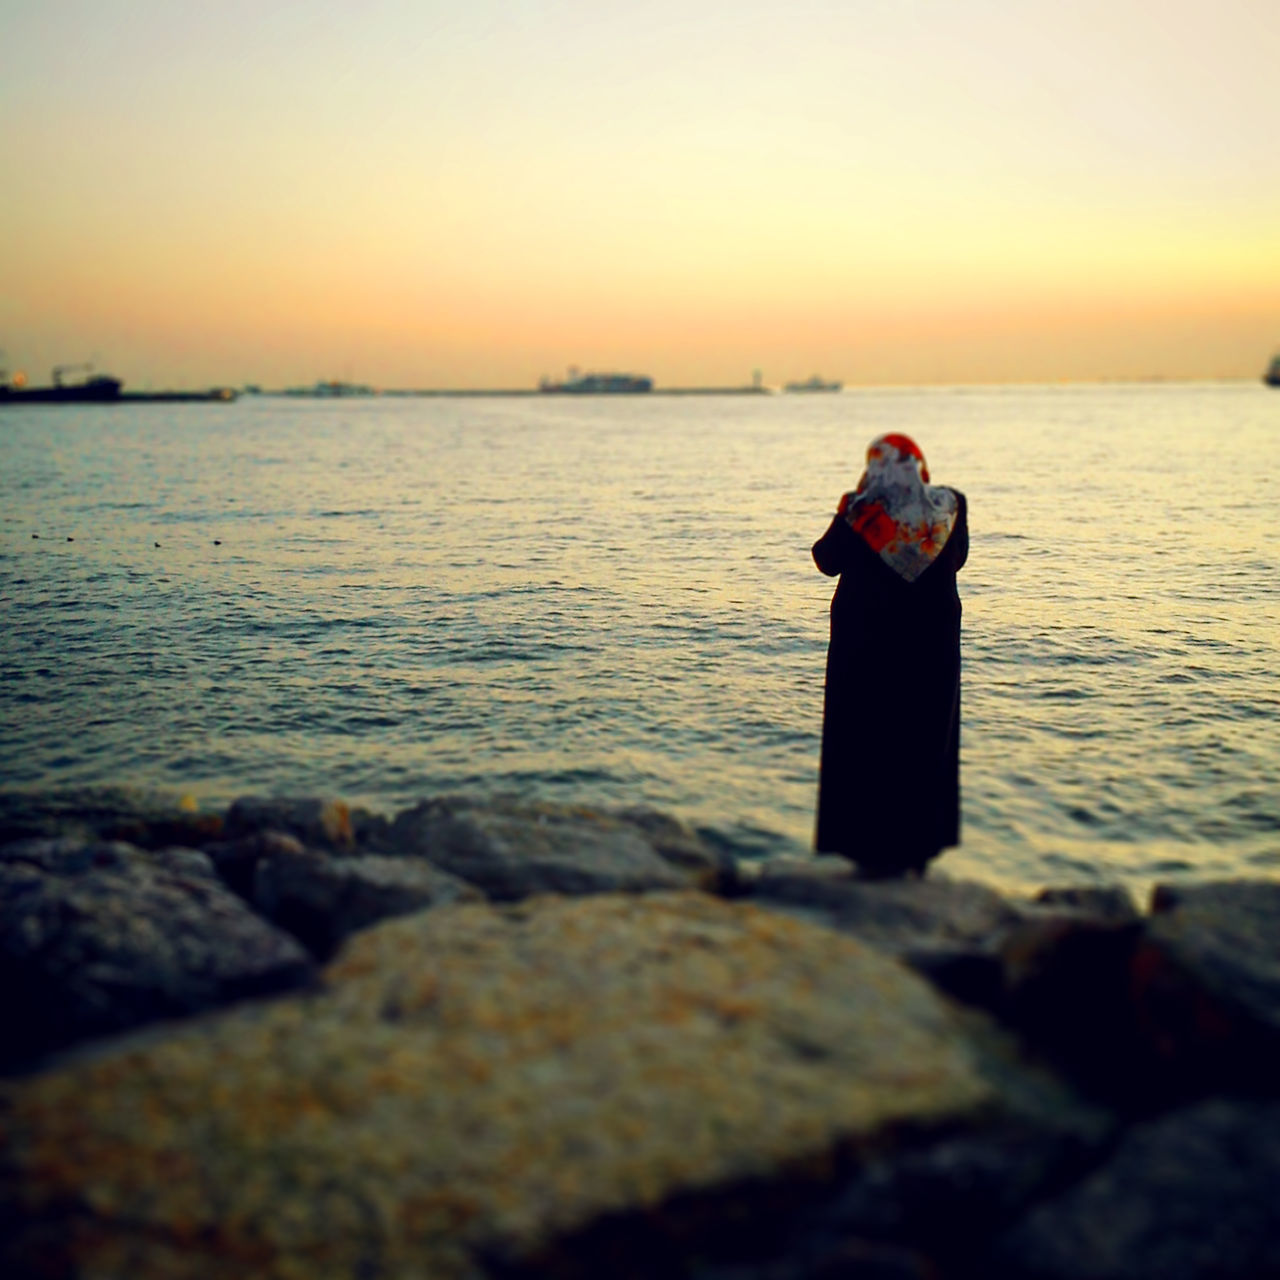 sea, water, sunset, real people, one person, nature, beauty in nature, standing, horizon over water, scenics, tranquil scene, leisure activity, outdoors, sky, beach, tranquility, idyllic, lifestyles, clear sky, vacations, women, full length, camera - photographic equipment, photographing, photography themes, young women, day, young adult, people